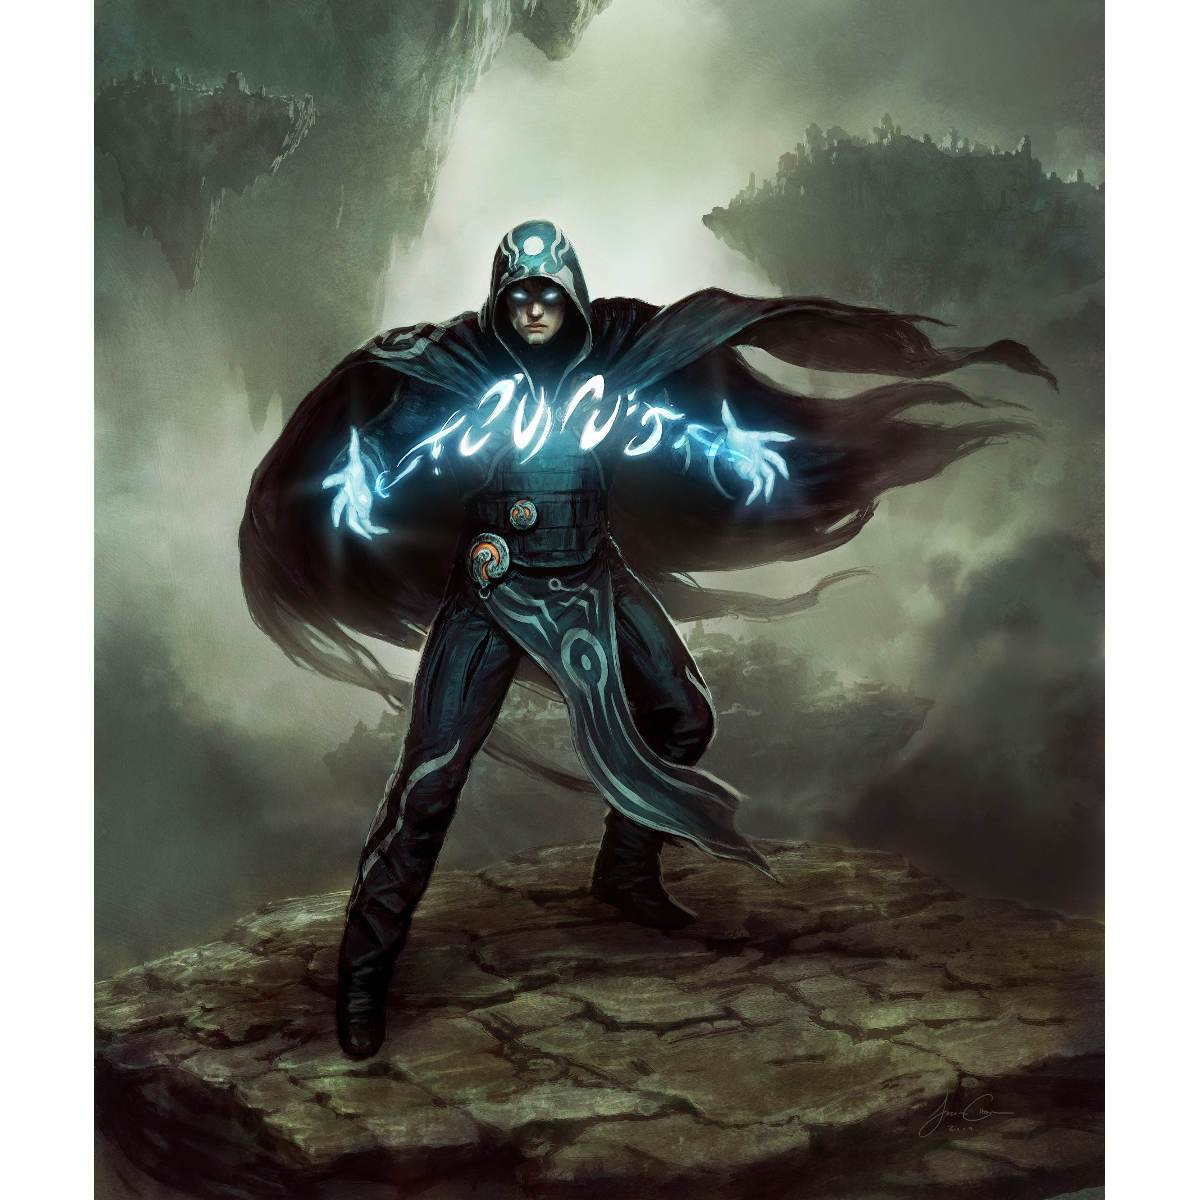 Jace, the Mind Sculptor Print - Print - Original Magic Art - Accessories for Magic the Gathering and other card games